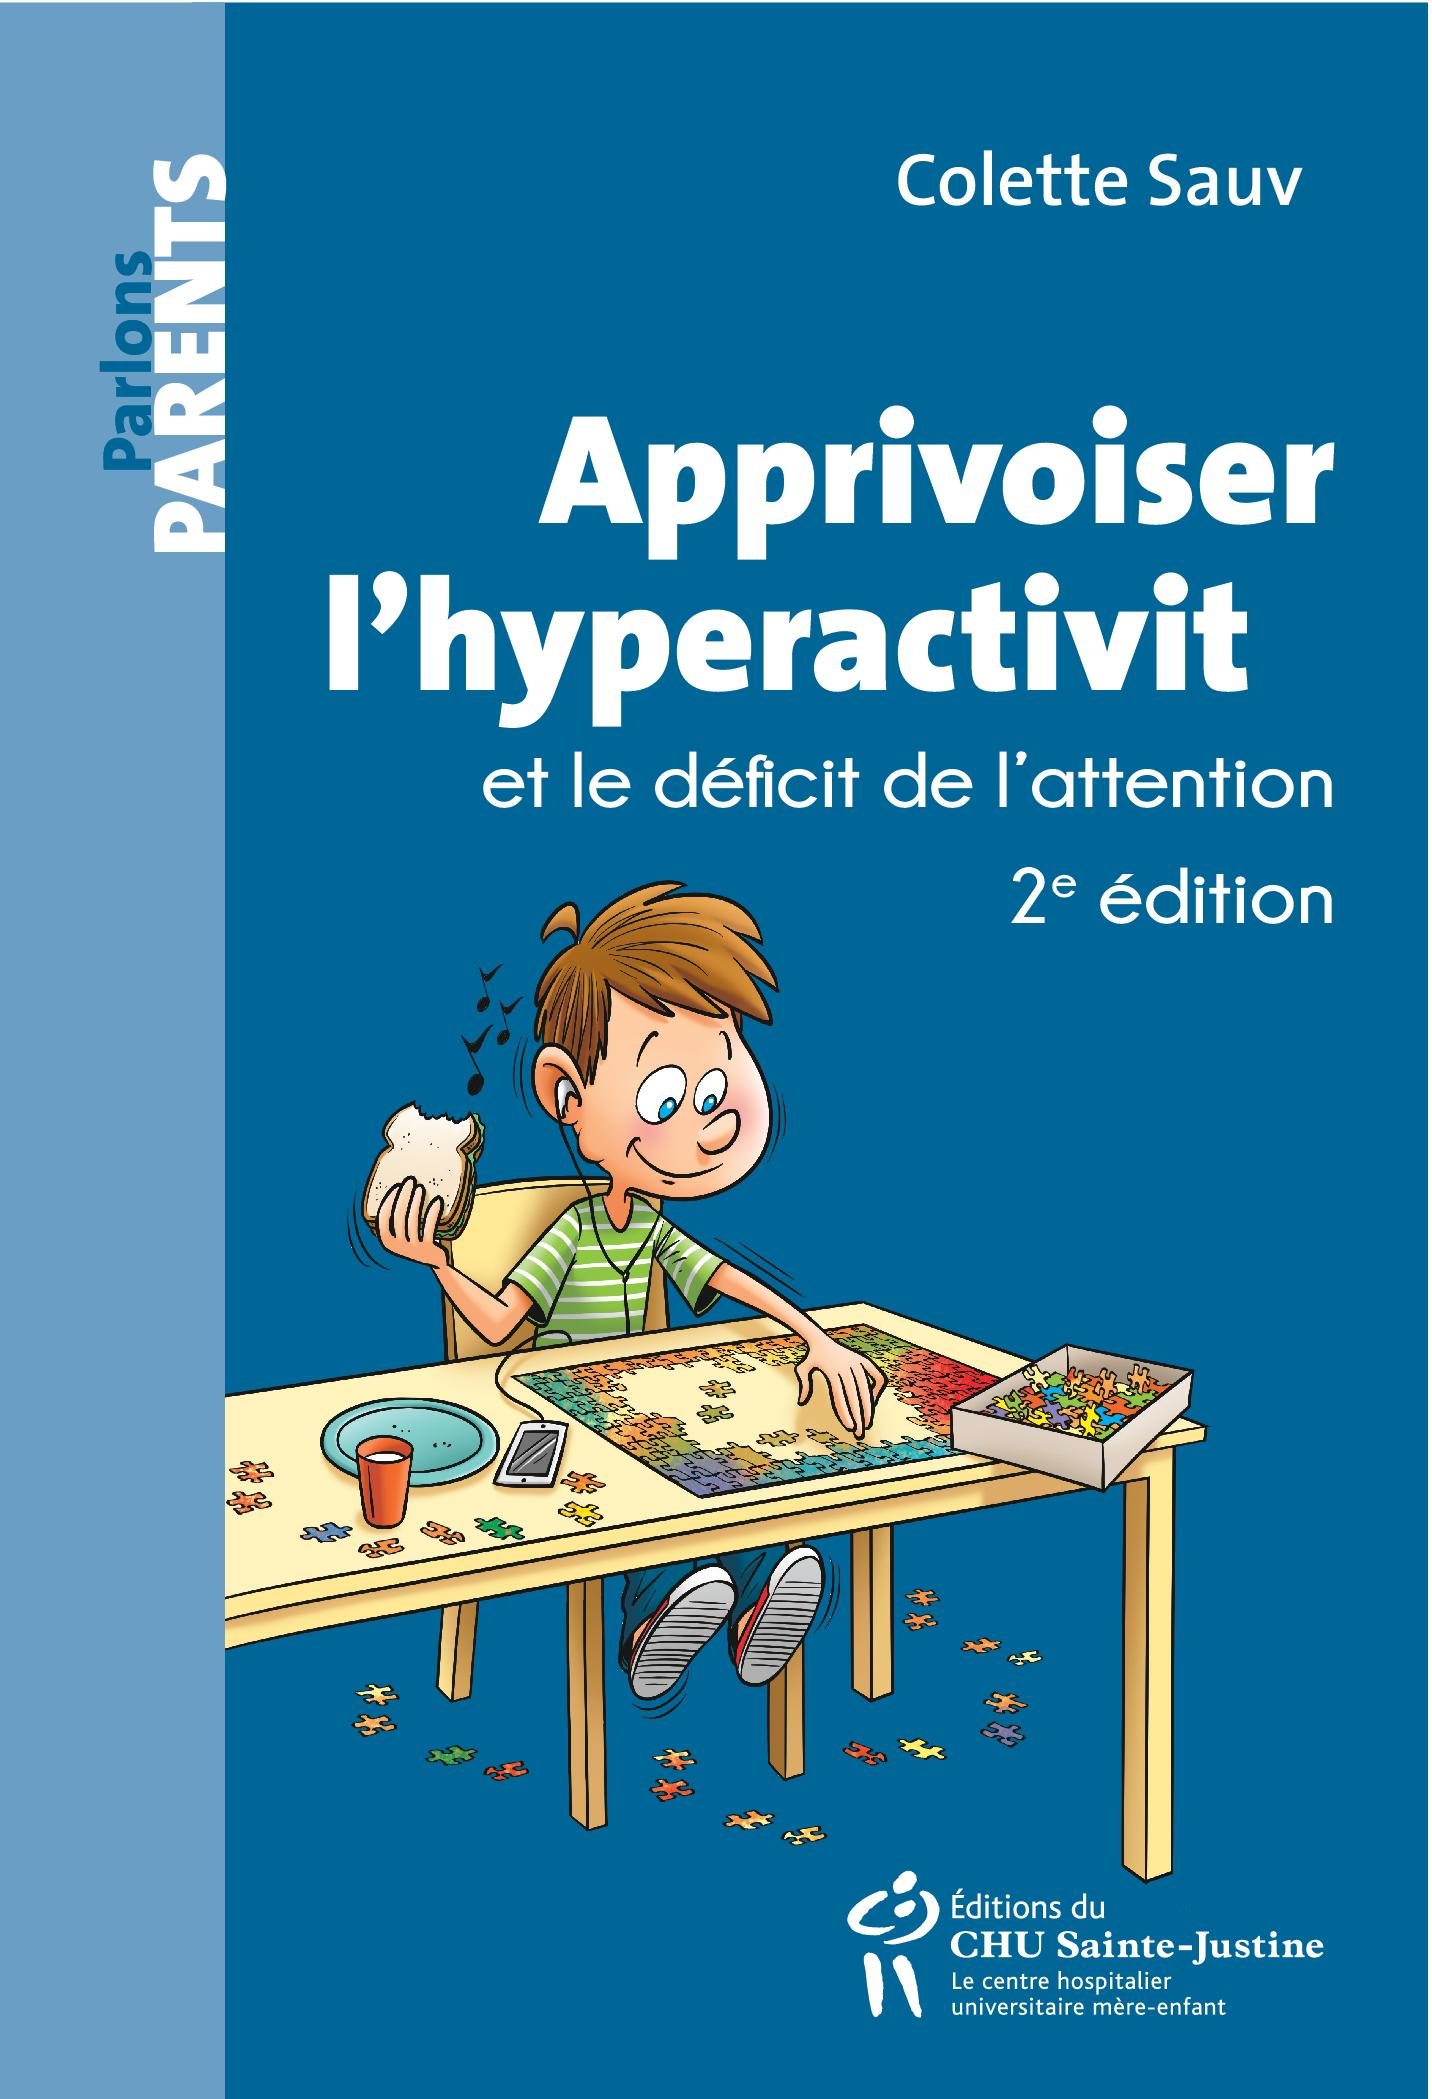 Apprivoiser l'hyperactivité et le déficit de l'attention